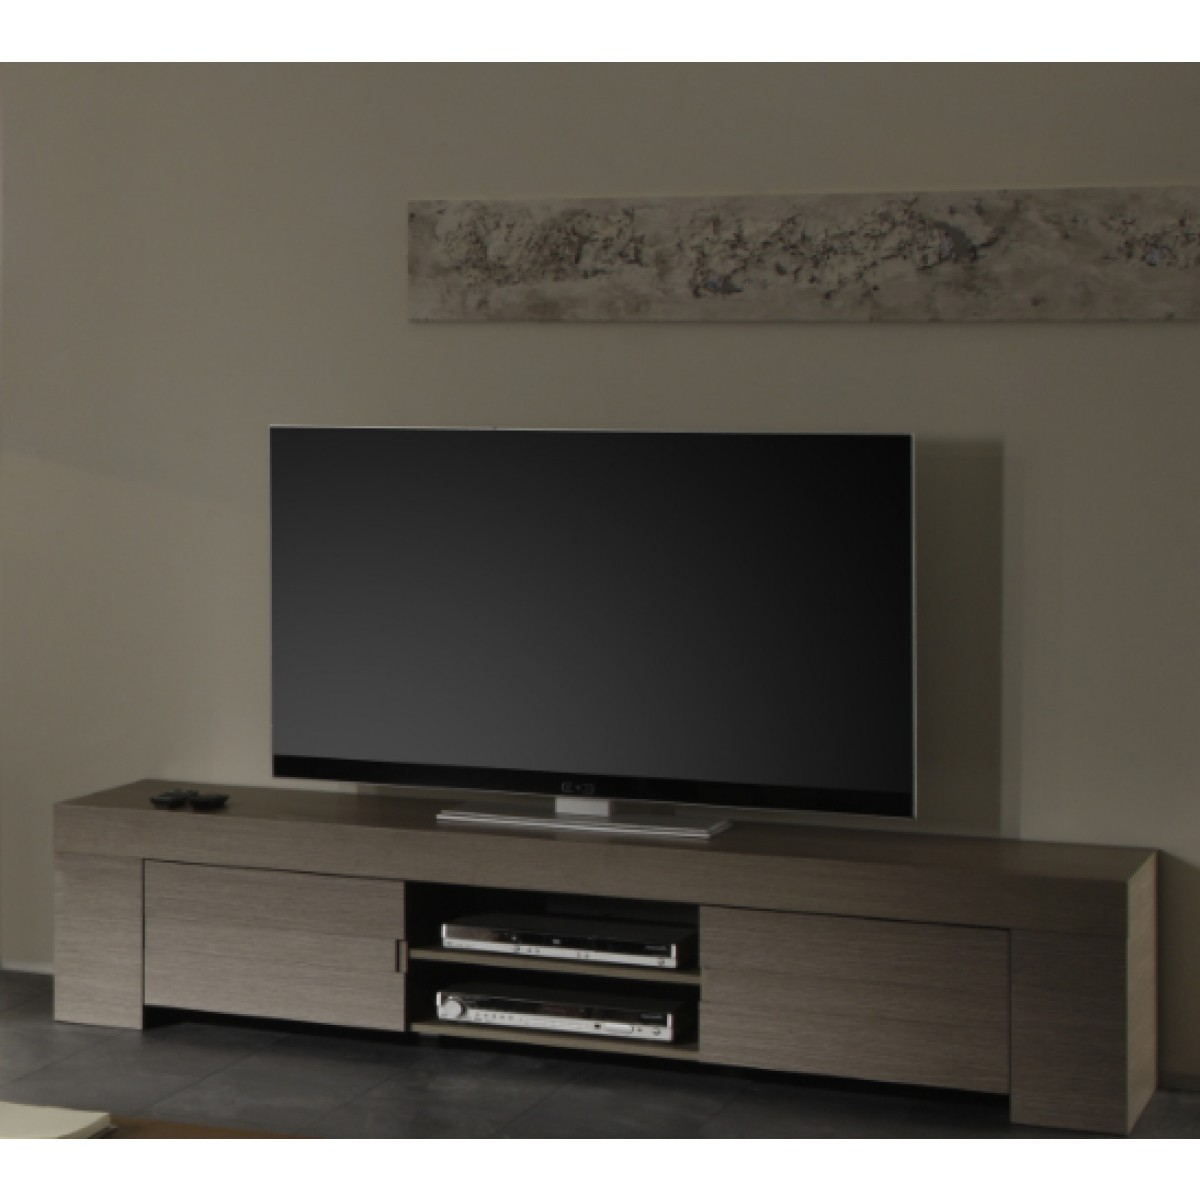 meuble tv design italien meubles design italien tv meuble tv contemporain calligaris design. Black Bedroom Furniture Sets. Home Design Ideas